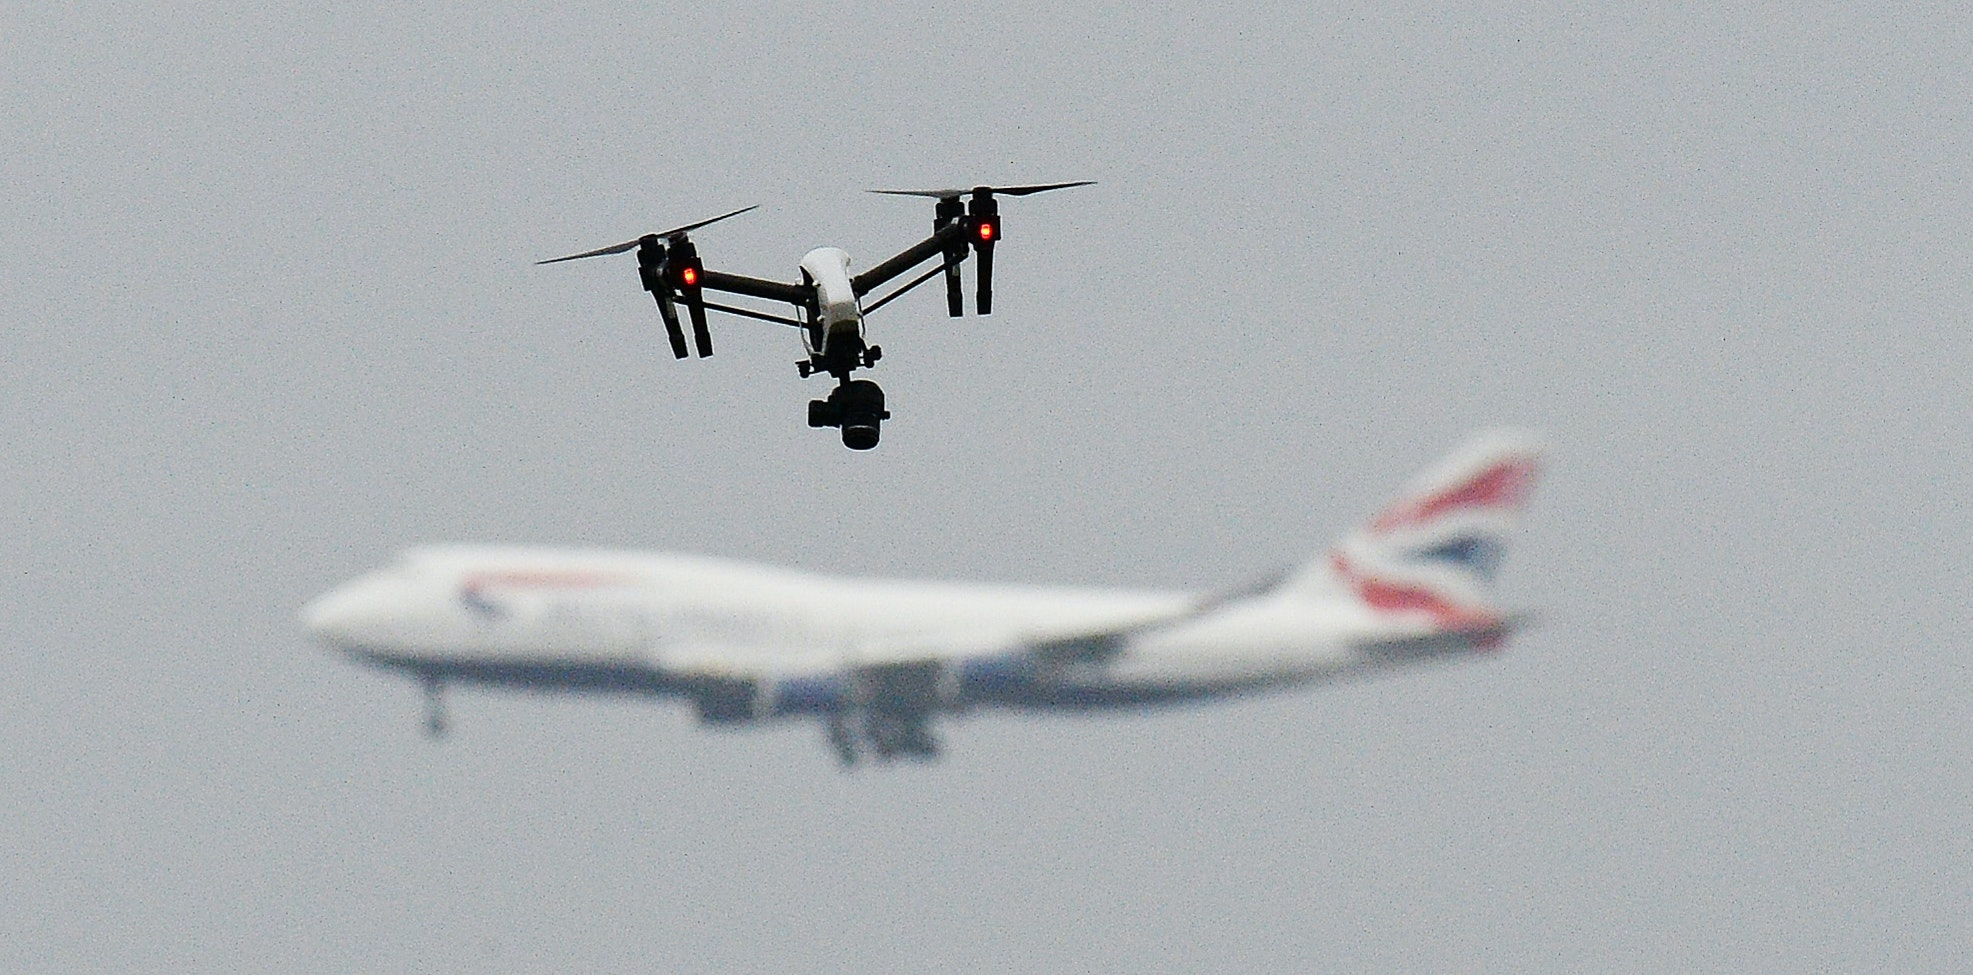 Gatwick drone drama shows how even unarmed UAVs can cause economic chaos and risk to life